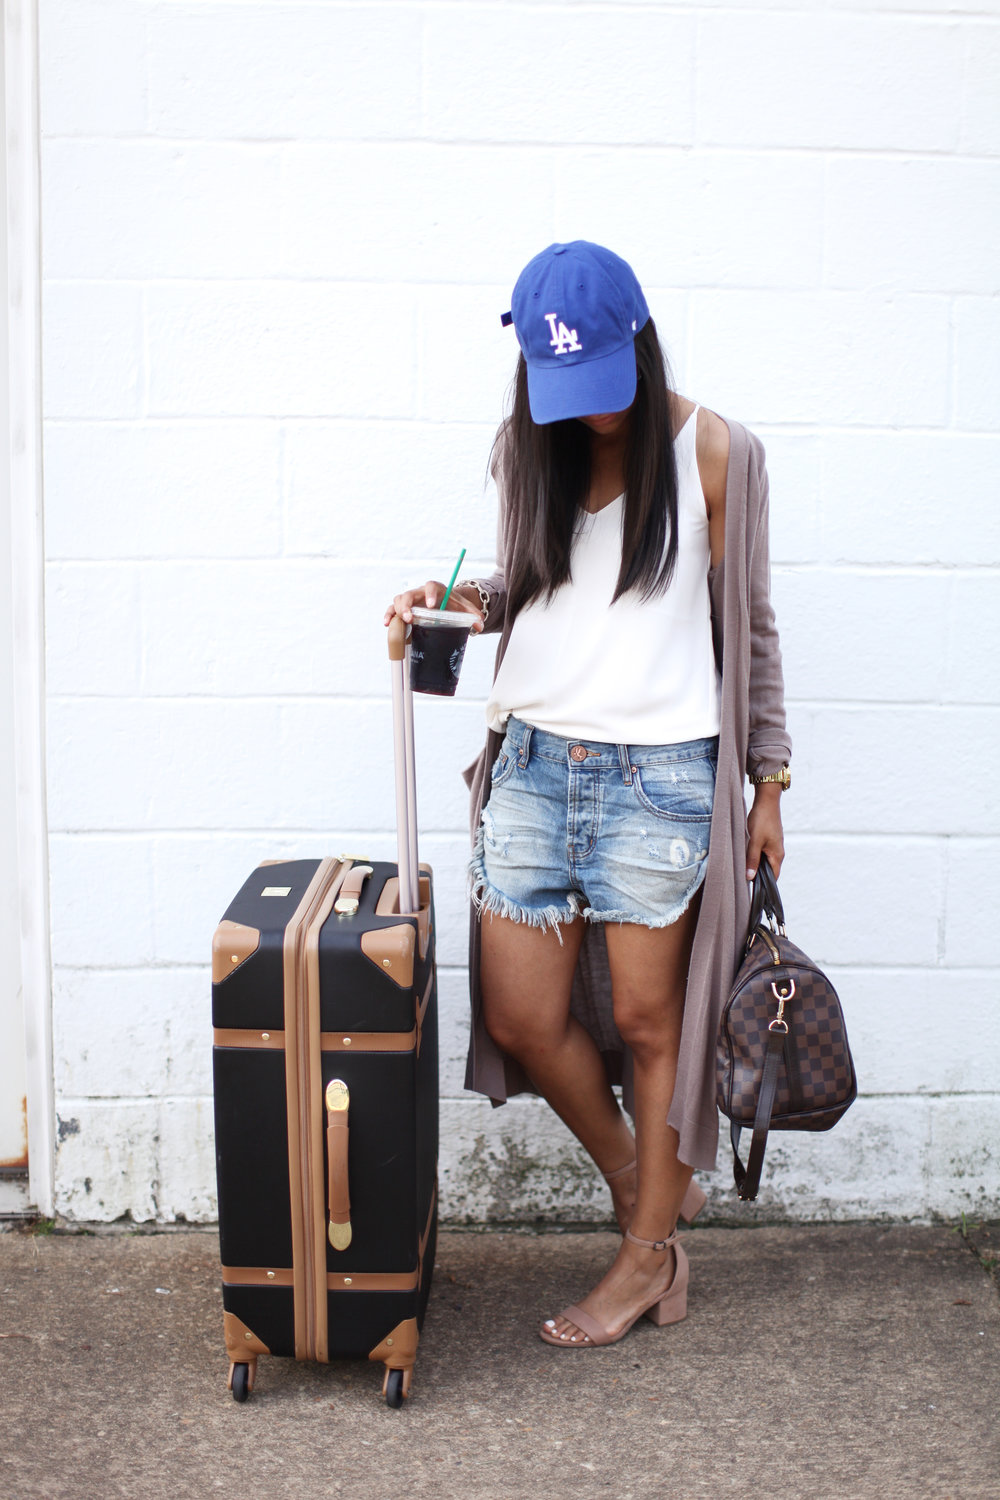 AIRPORT ATTIRE  - CAP: NORDSTROM (SHOP HERE) TOP: LOFT ( SHOP HERE) SHORTS: ONE X ONETEASPOON (SHOP HERE) SHOES: MERONA (SHOP HERE) LUGGAGE : DVF (SHOP HERE)